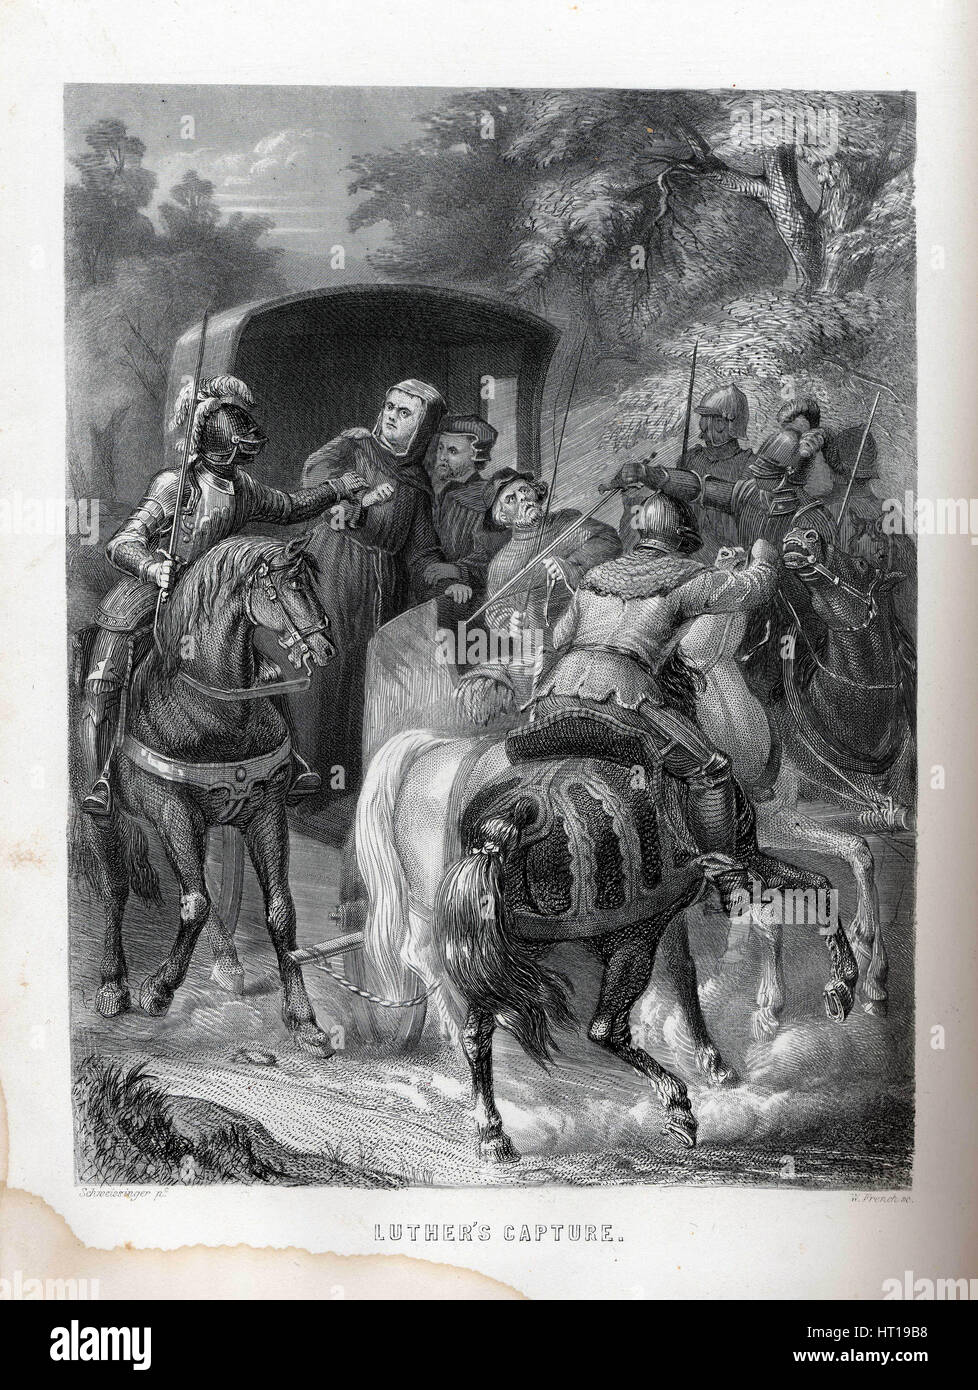 Luther's Capture, 1882. Artist: Schweissinger, G. (active End of 19th cen.) - Stock Image